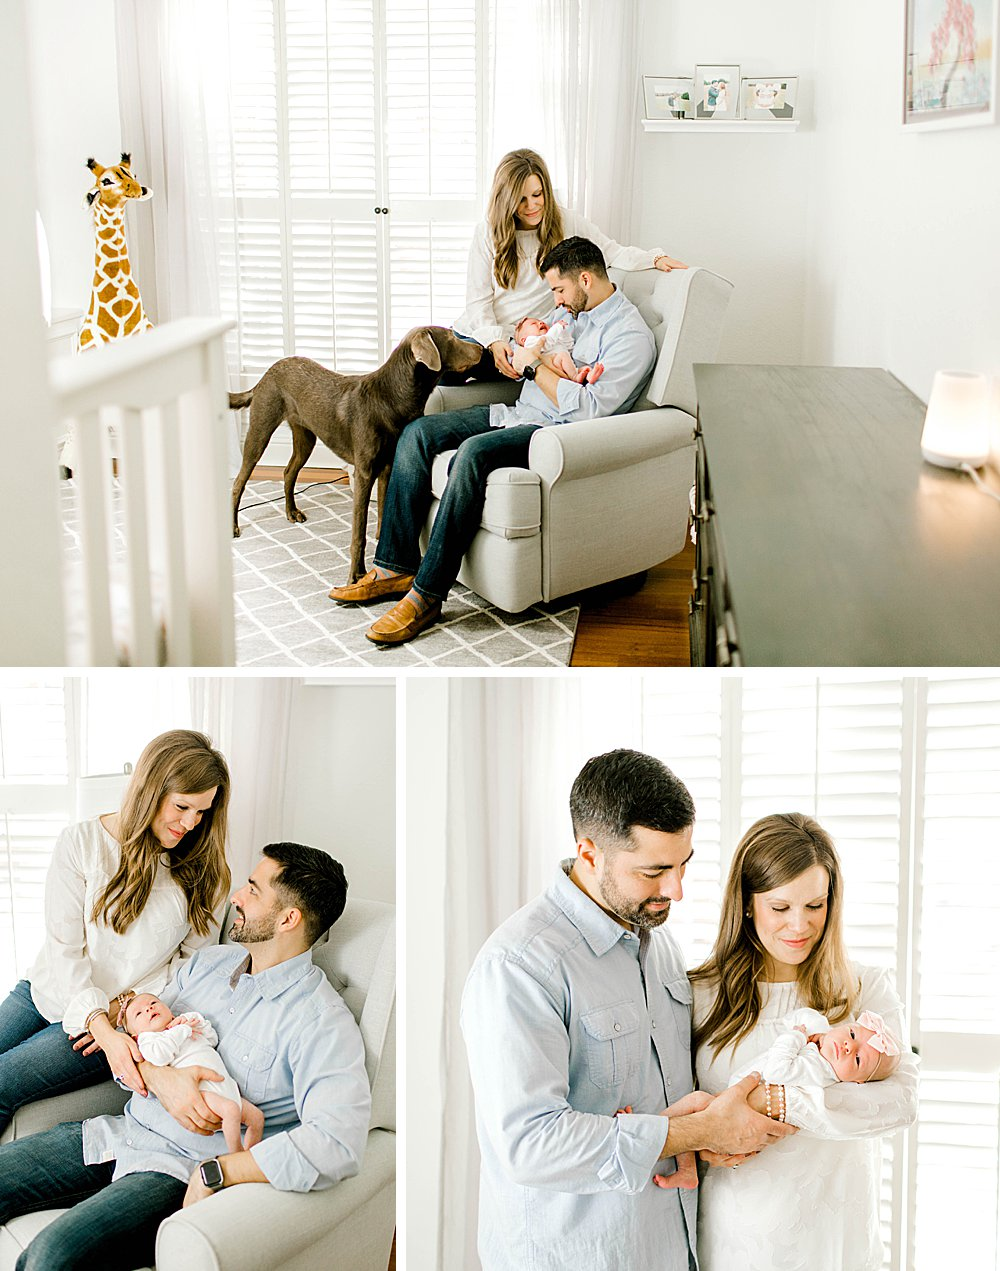 Parents in nursery with baby girl